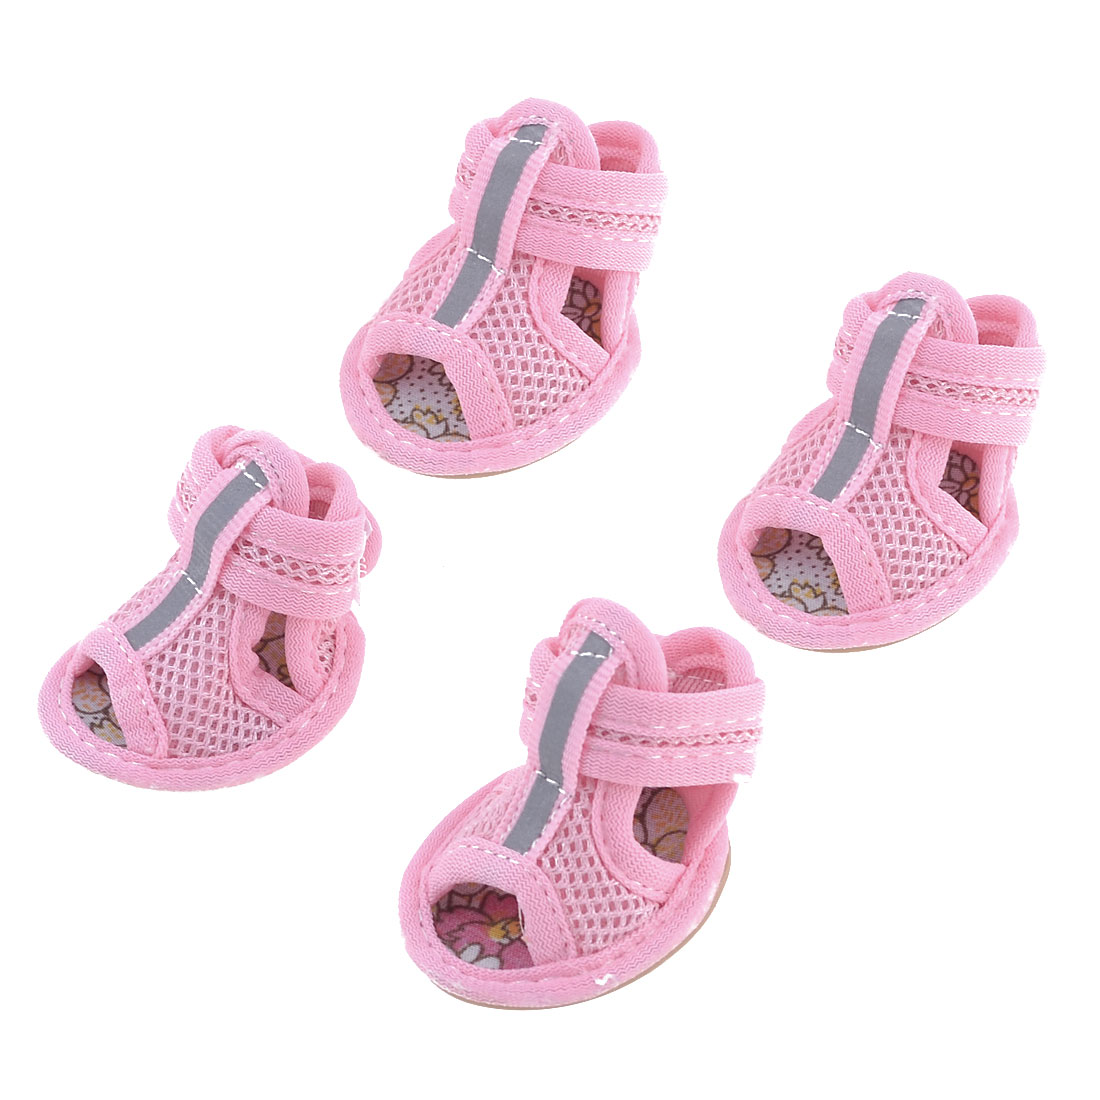 Rubber Sole Mesh Sandals Yorkie Chihuaha Dog Boots Shoes Pink Size 2 2 Pairs